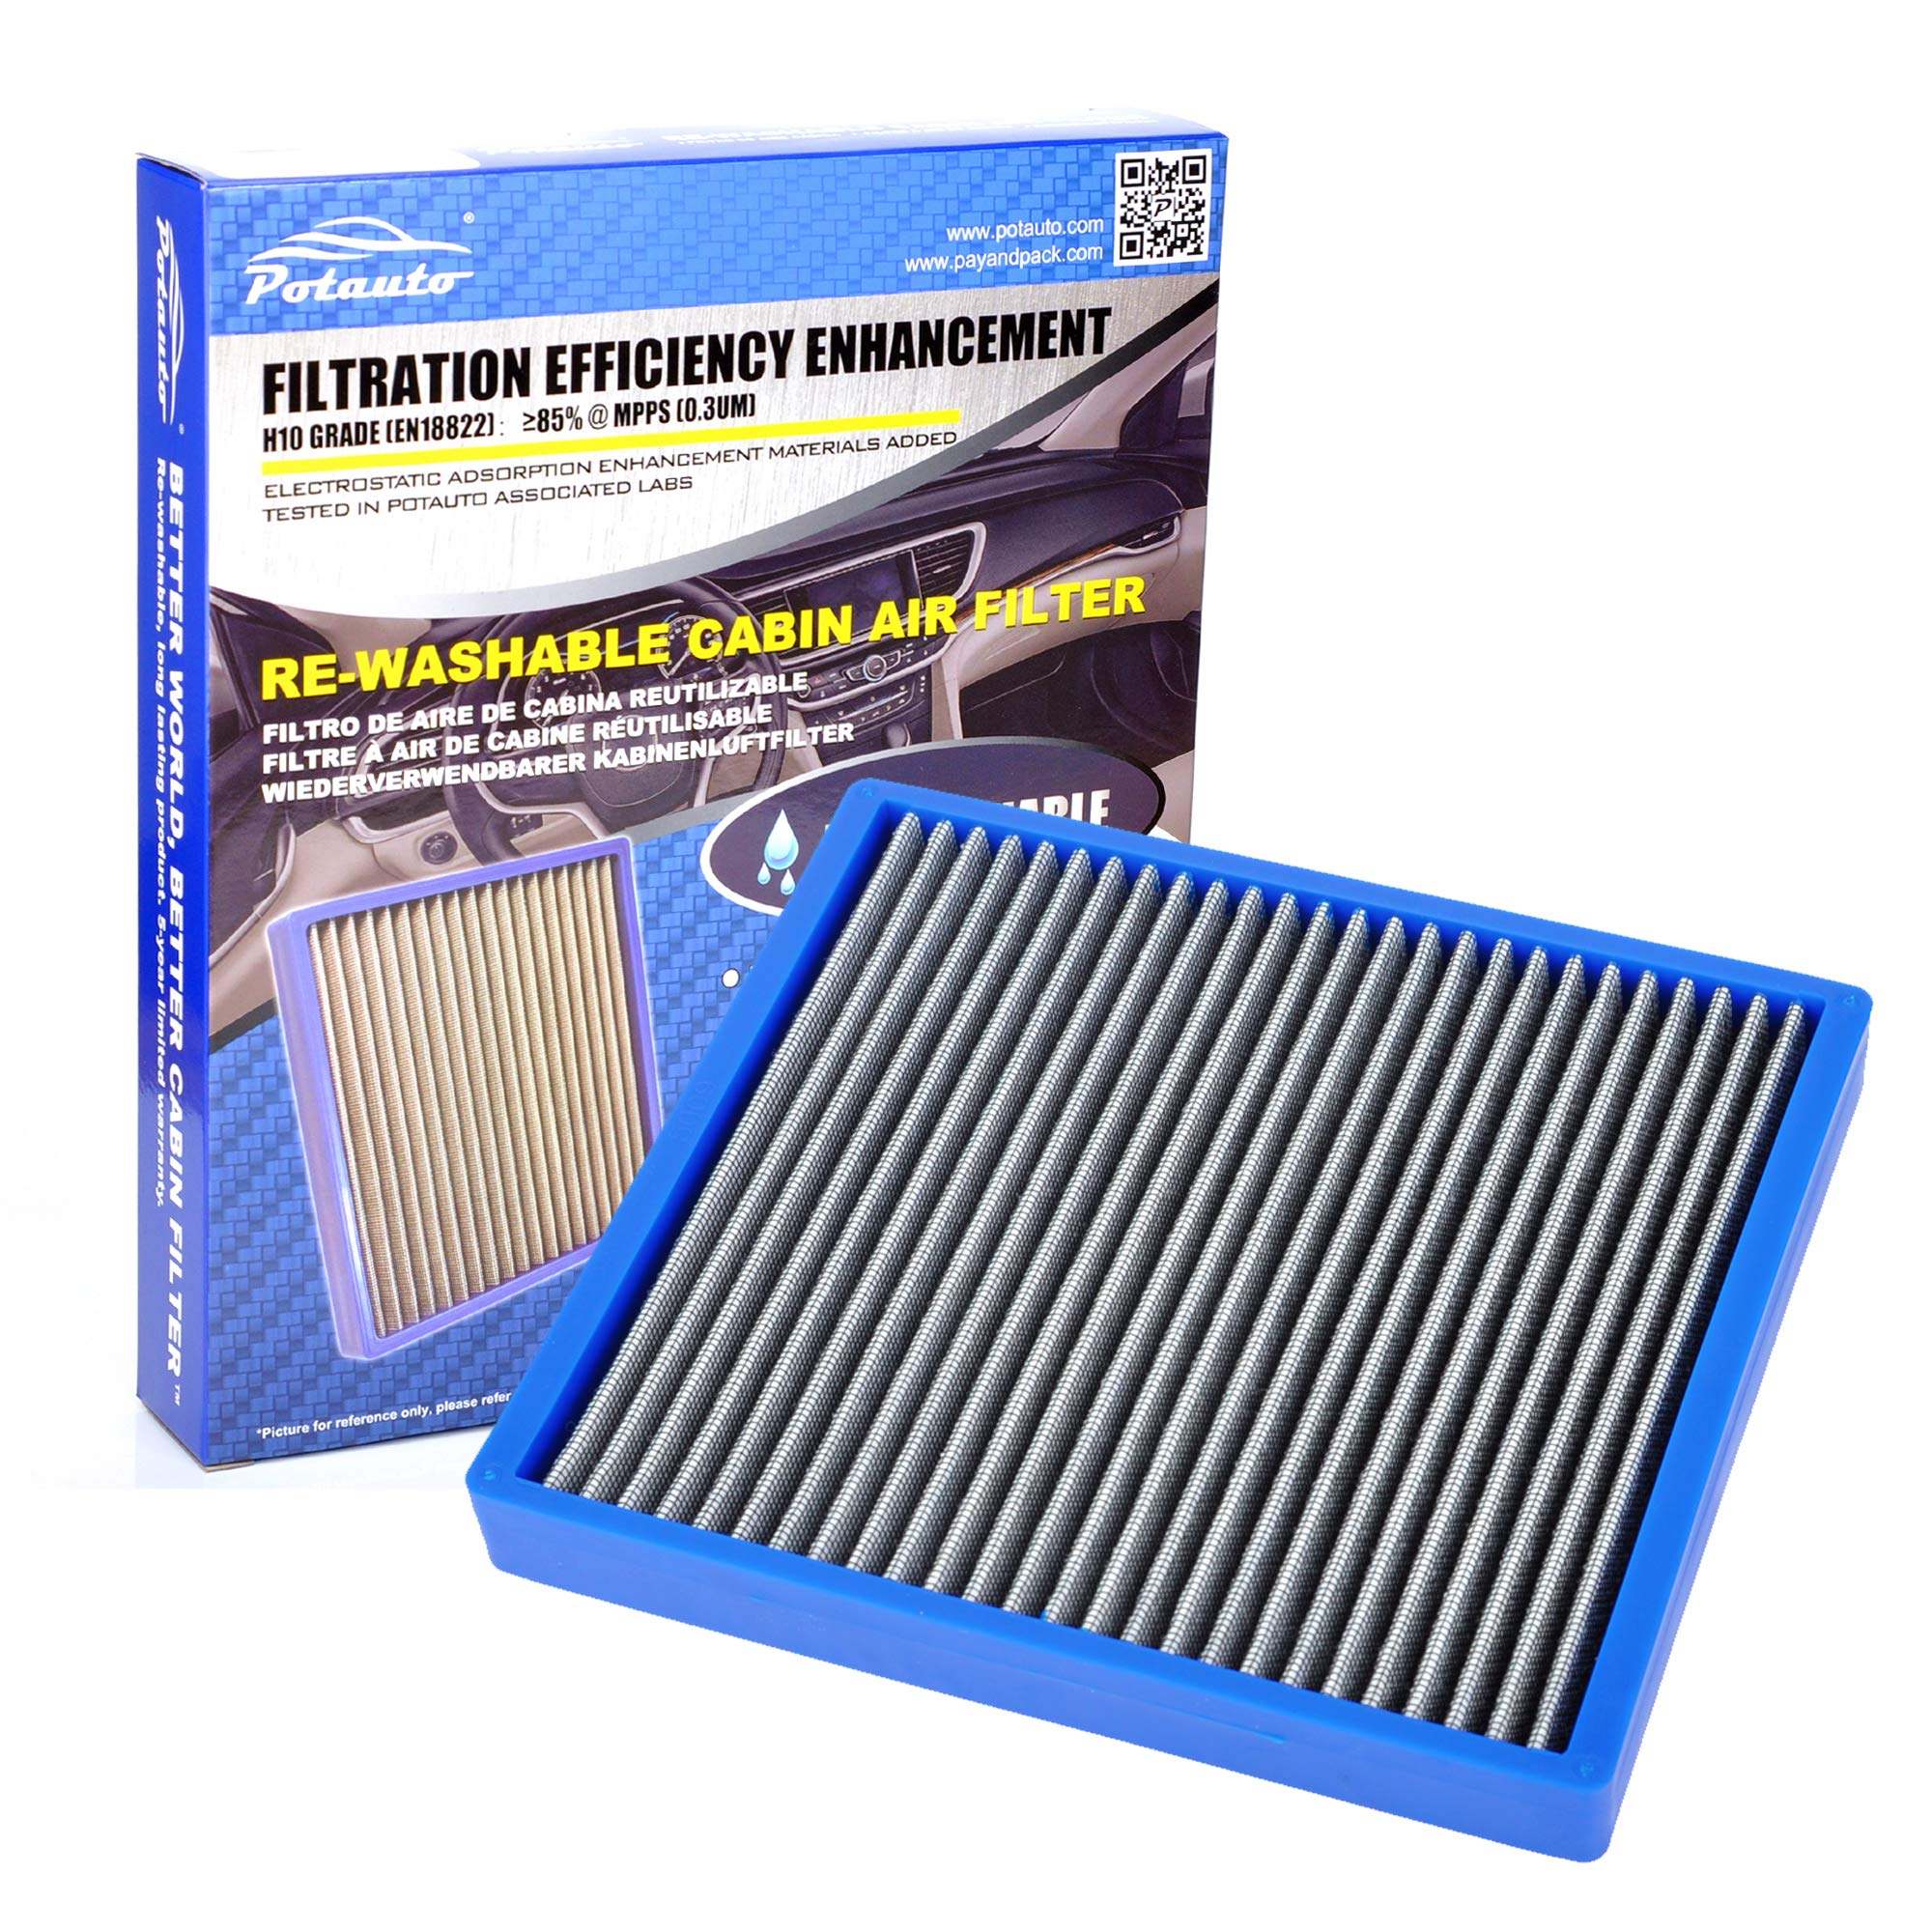 POTAUTO MAP 5009 Re-washable Cabin Air Filter Cleans Airflow for CHRYSLER, Cirrus, DODGE, Avenger, Caliber, Journey, JEEP, Compass, Patriot (Re-washable (Blue))